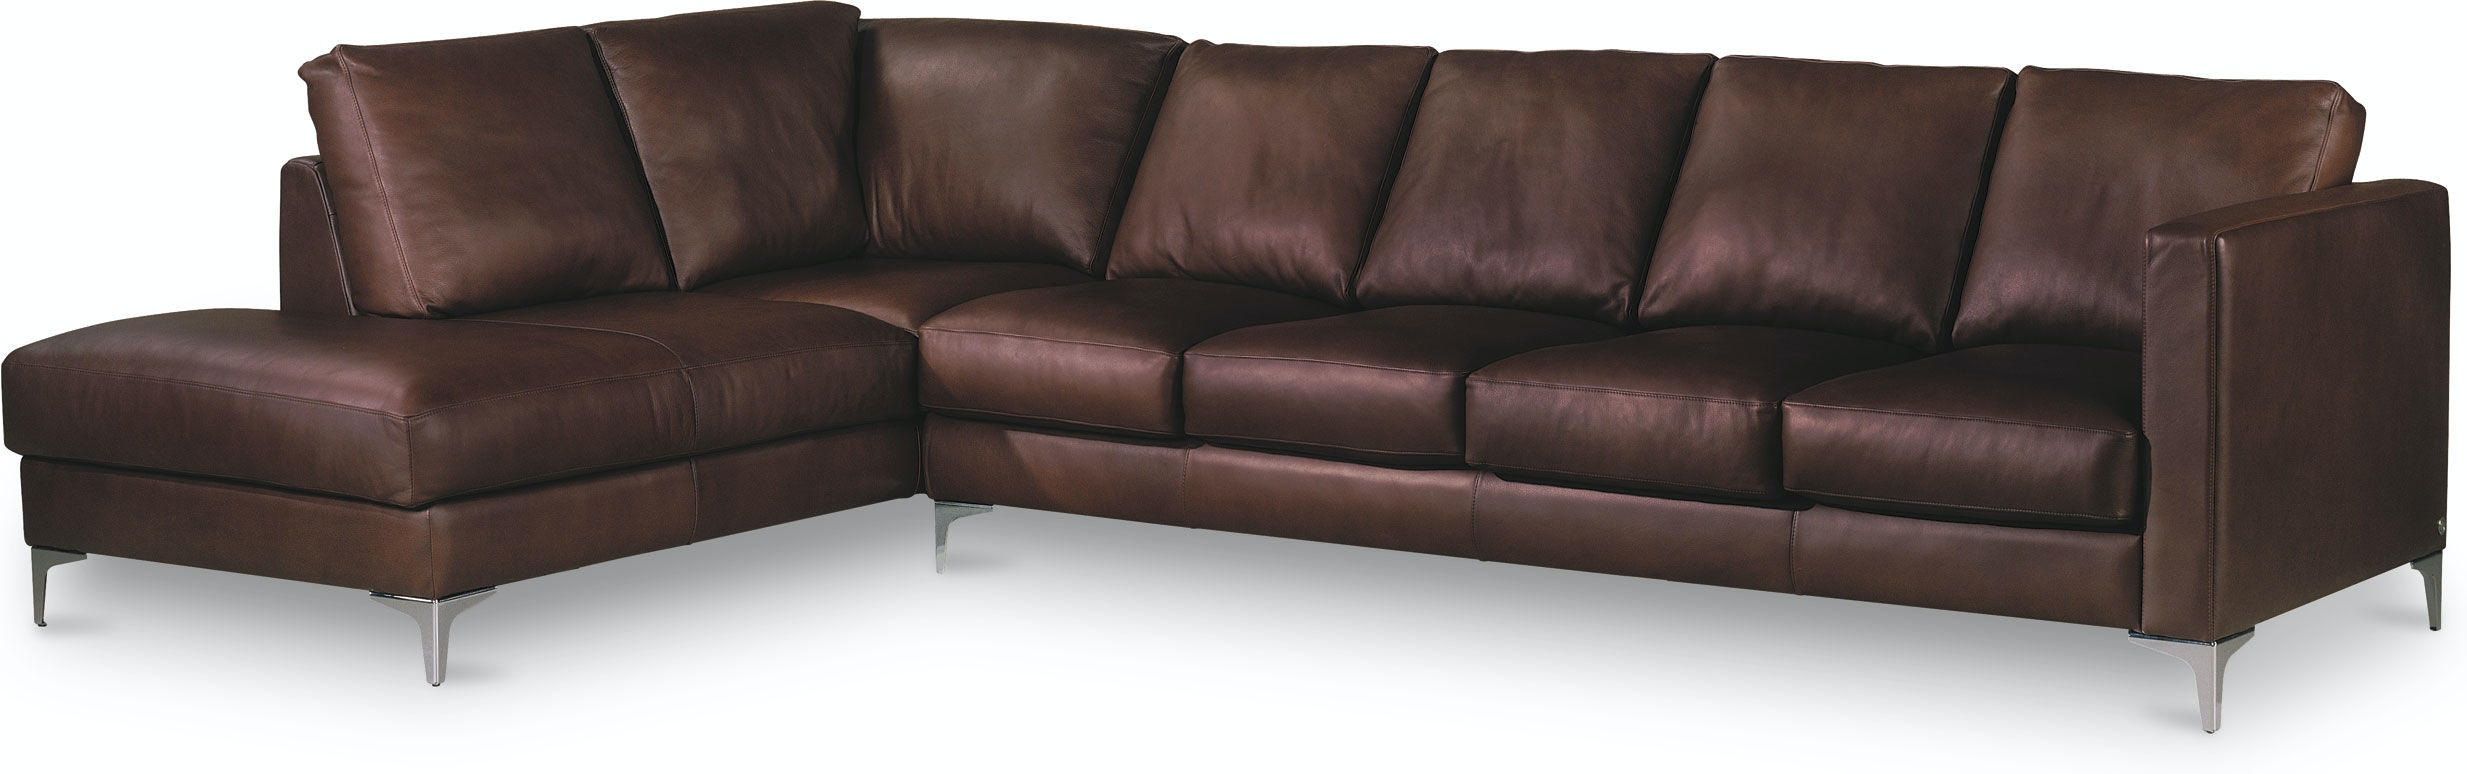 American Leather Living Room Kendall Sectional Malouf